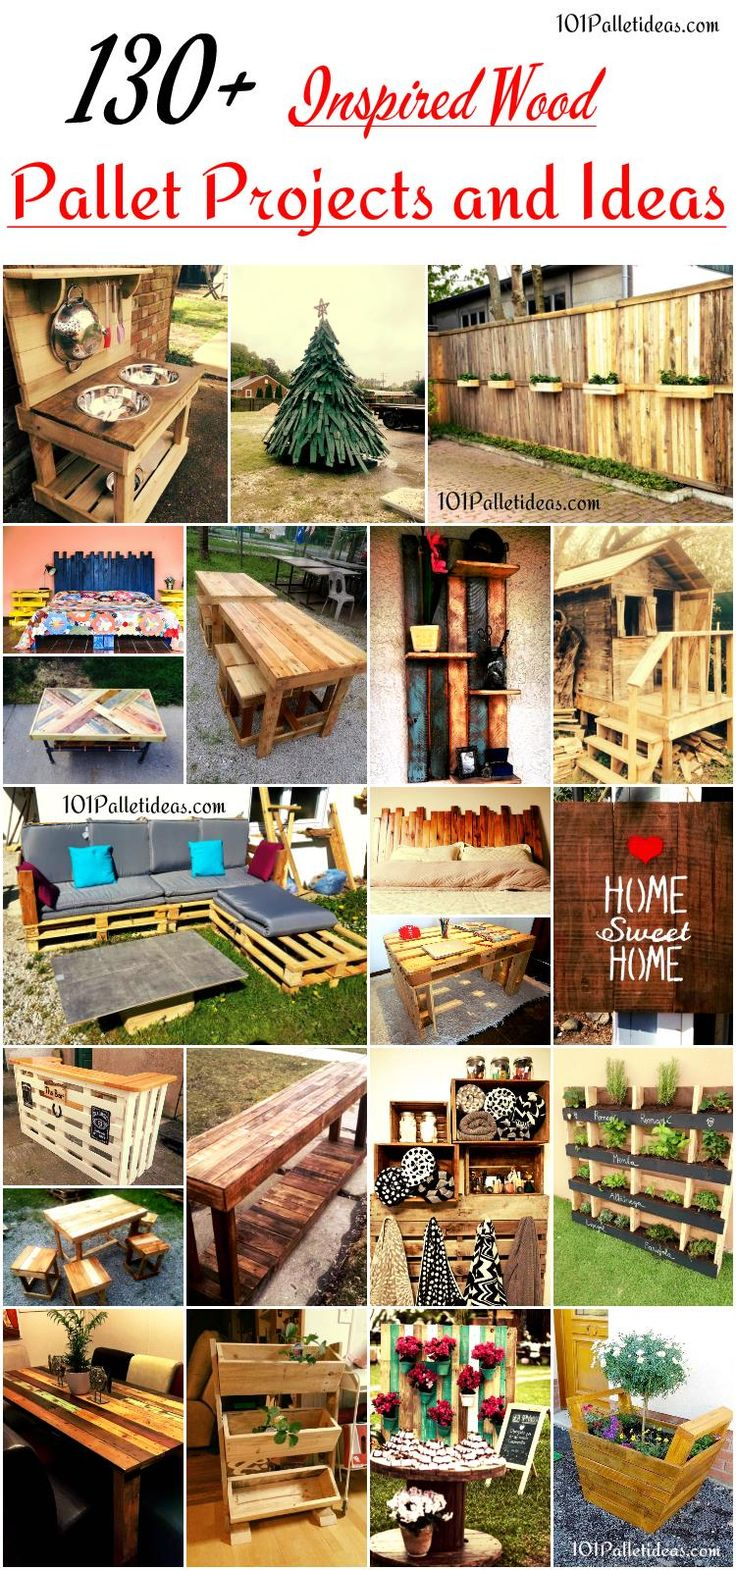 130-Inspired-Pallet-Projects-and-Ideas.jpg (750×1600)